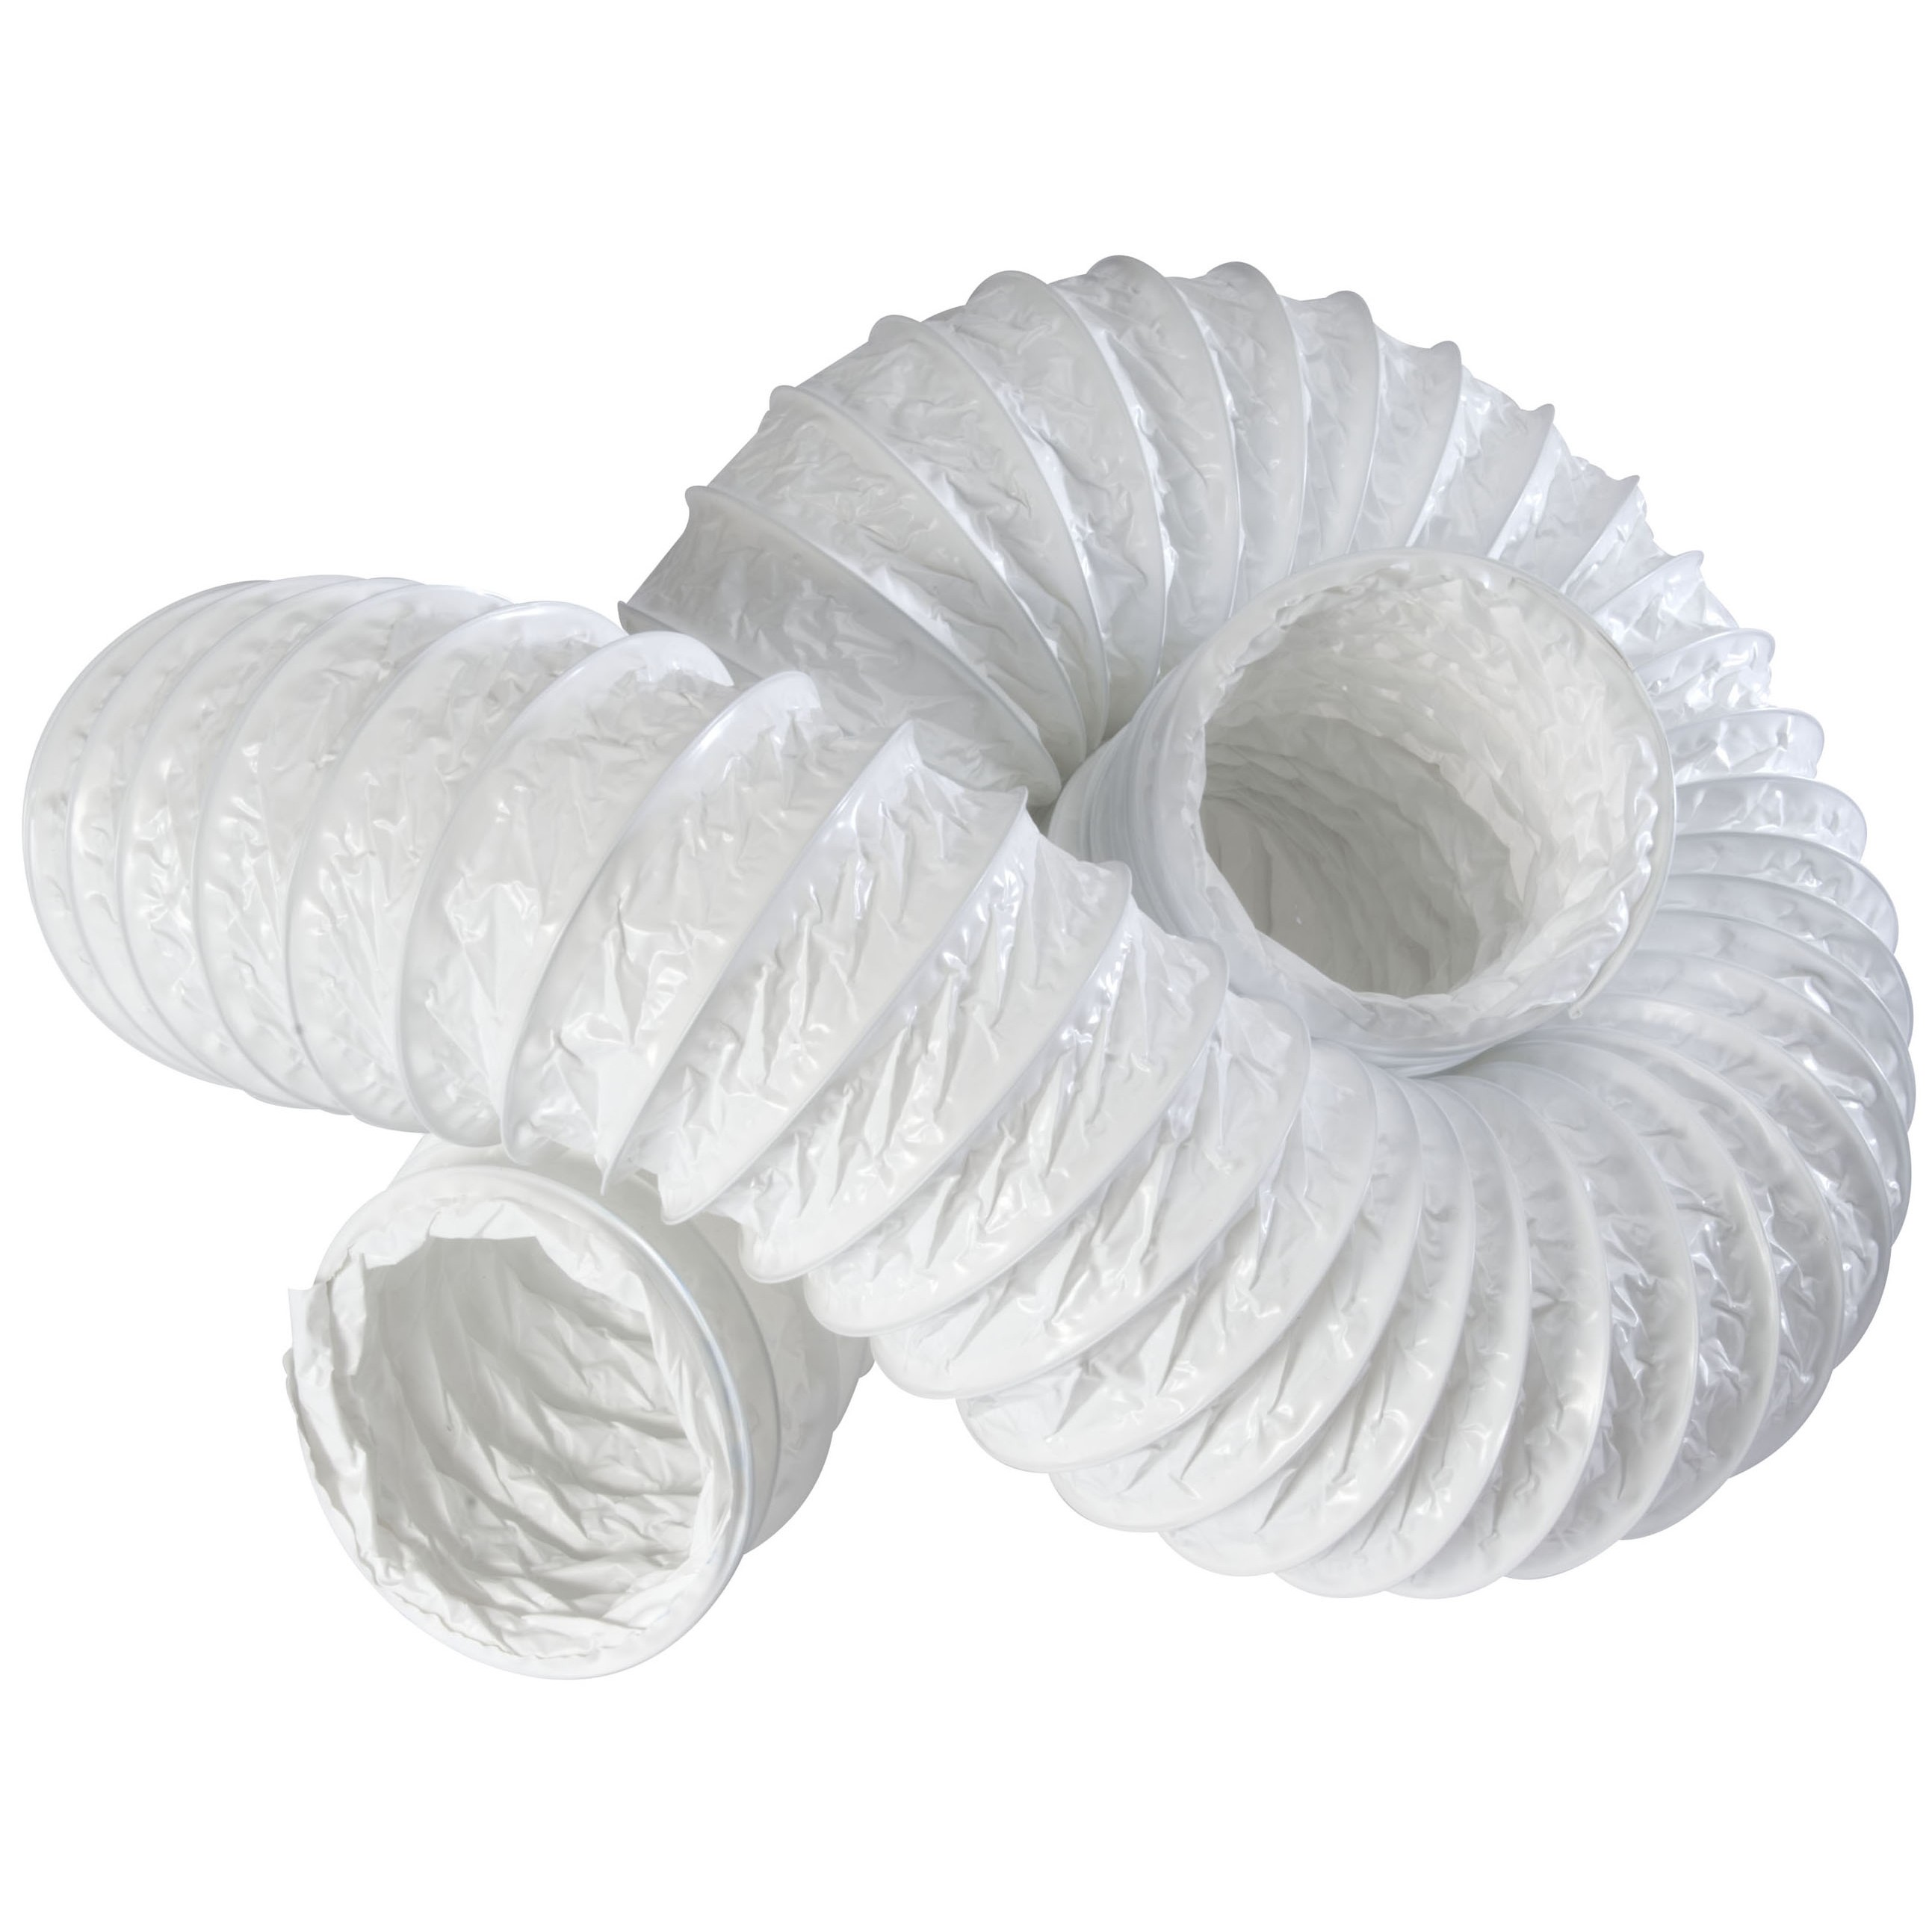 Manrose Round Ducting Flexible Hose - White, 100mm, 3 metre